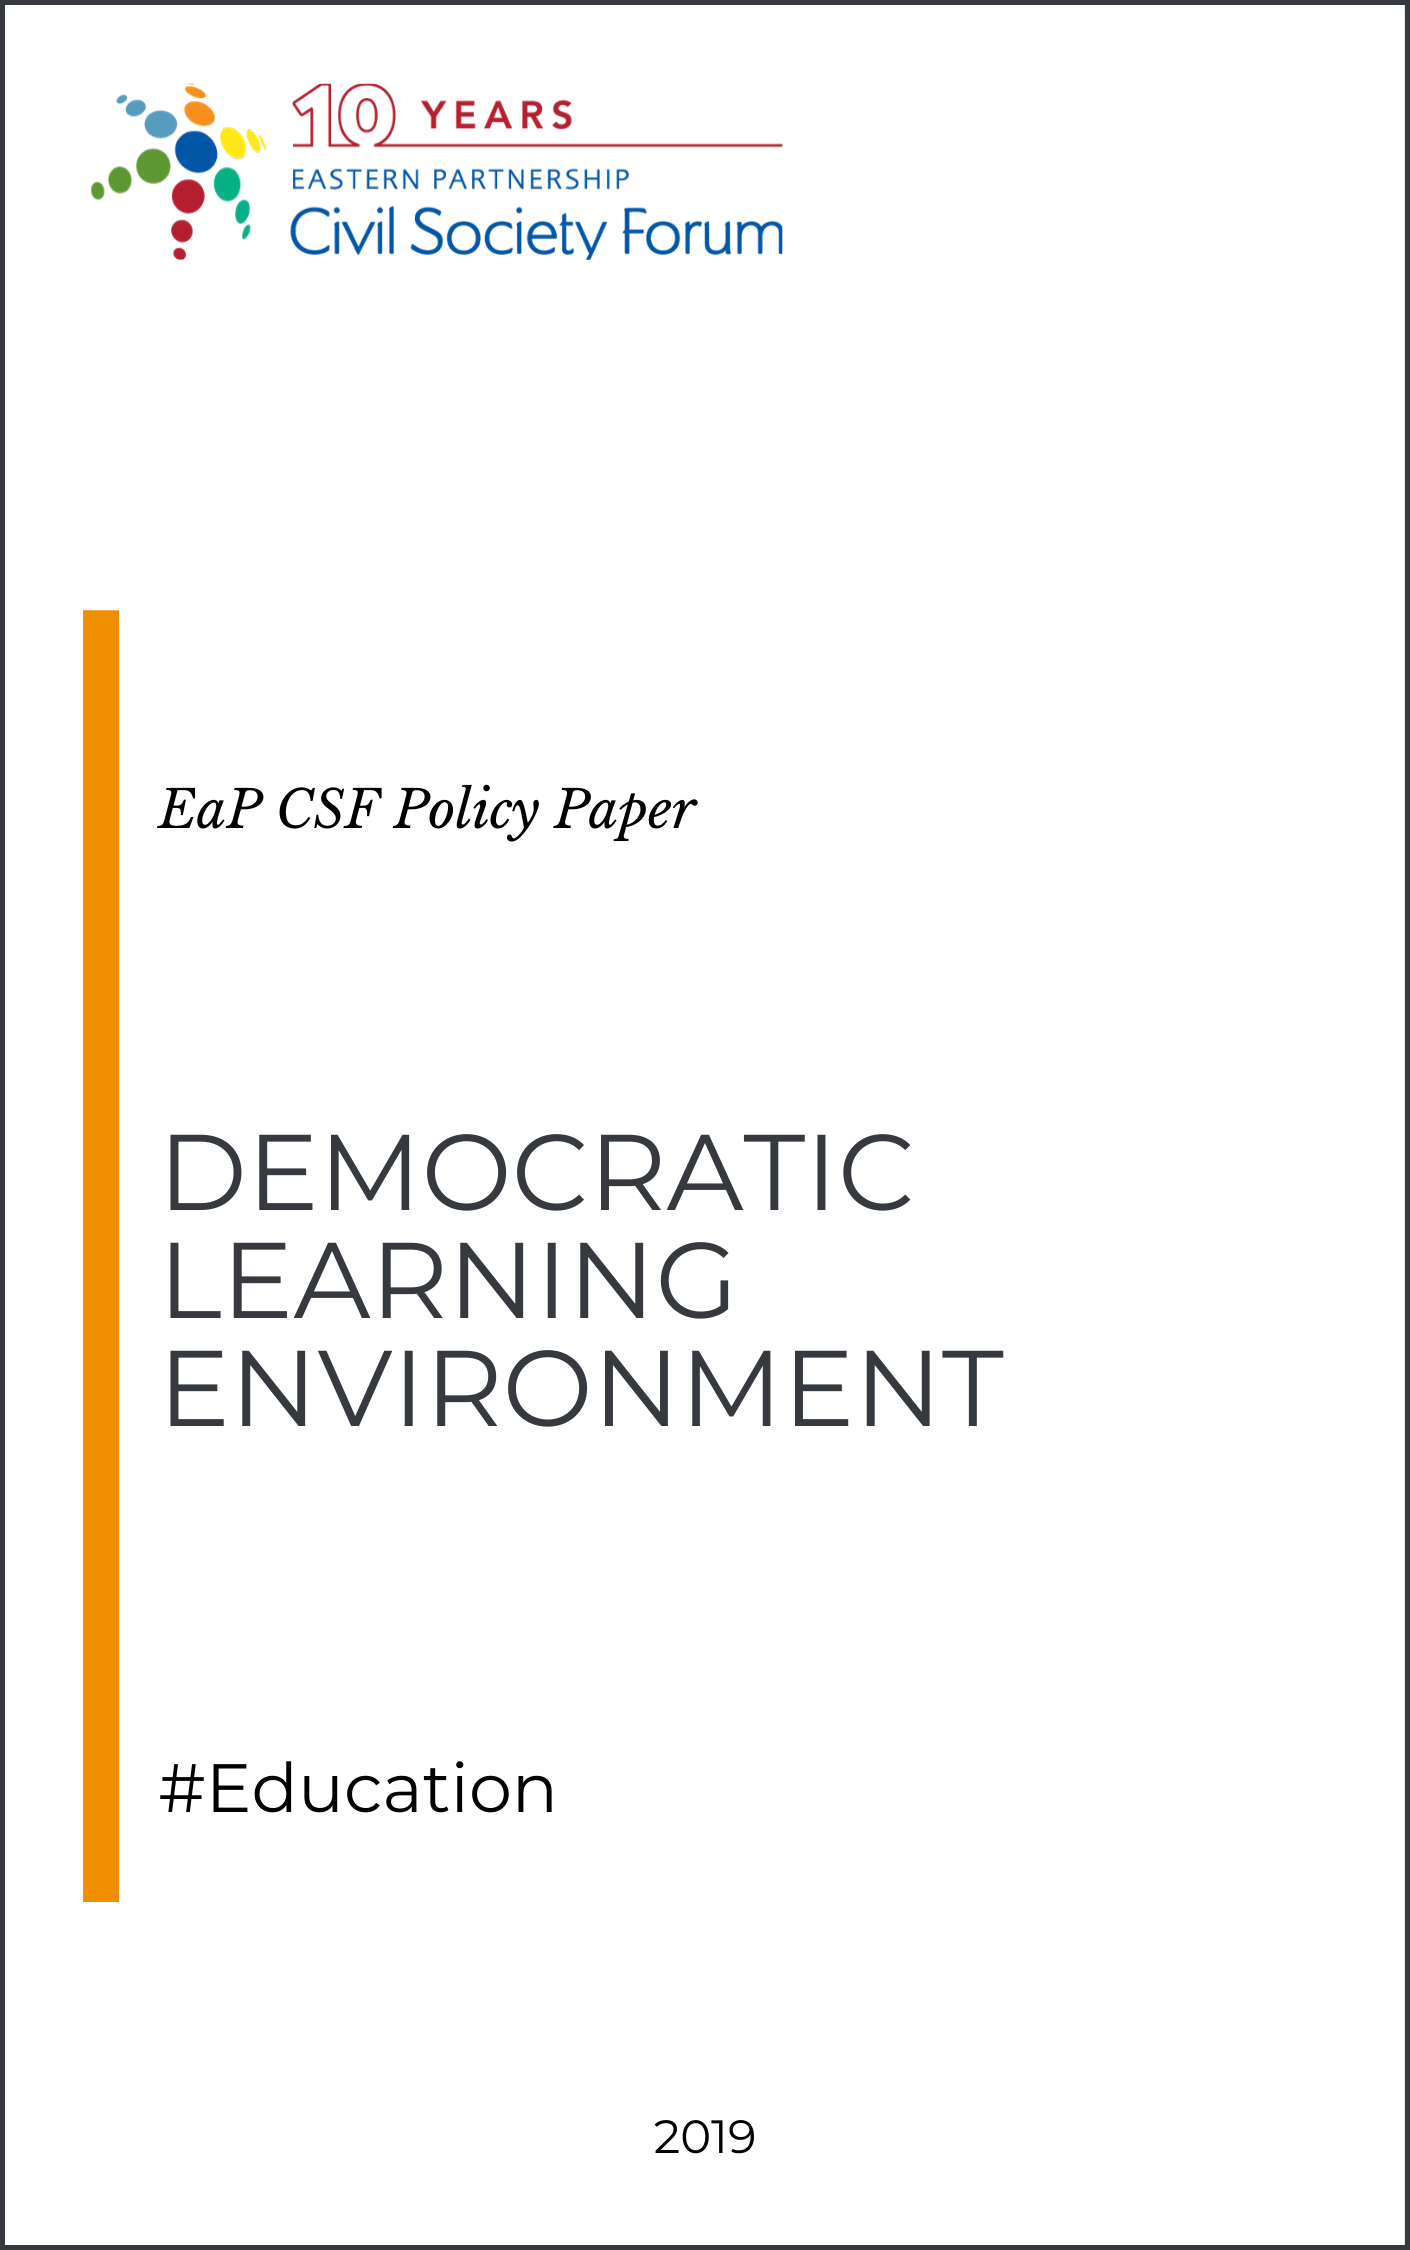 (English) Democratic Learning Environment